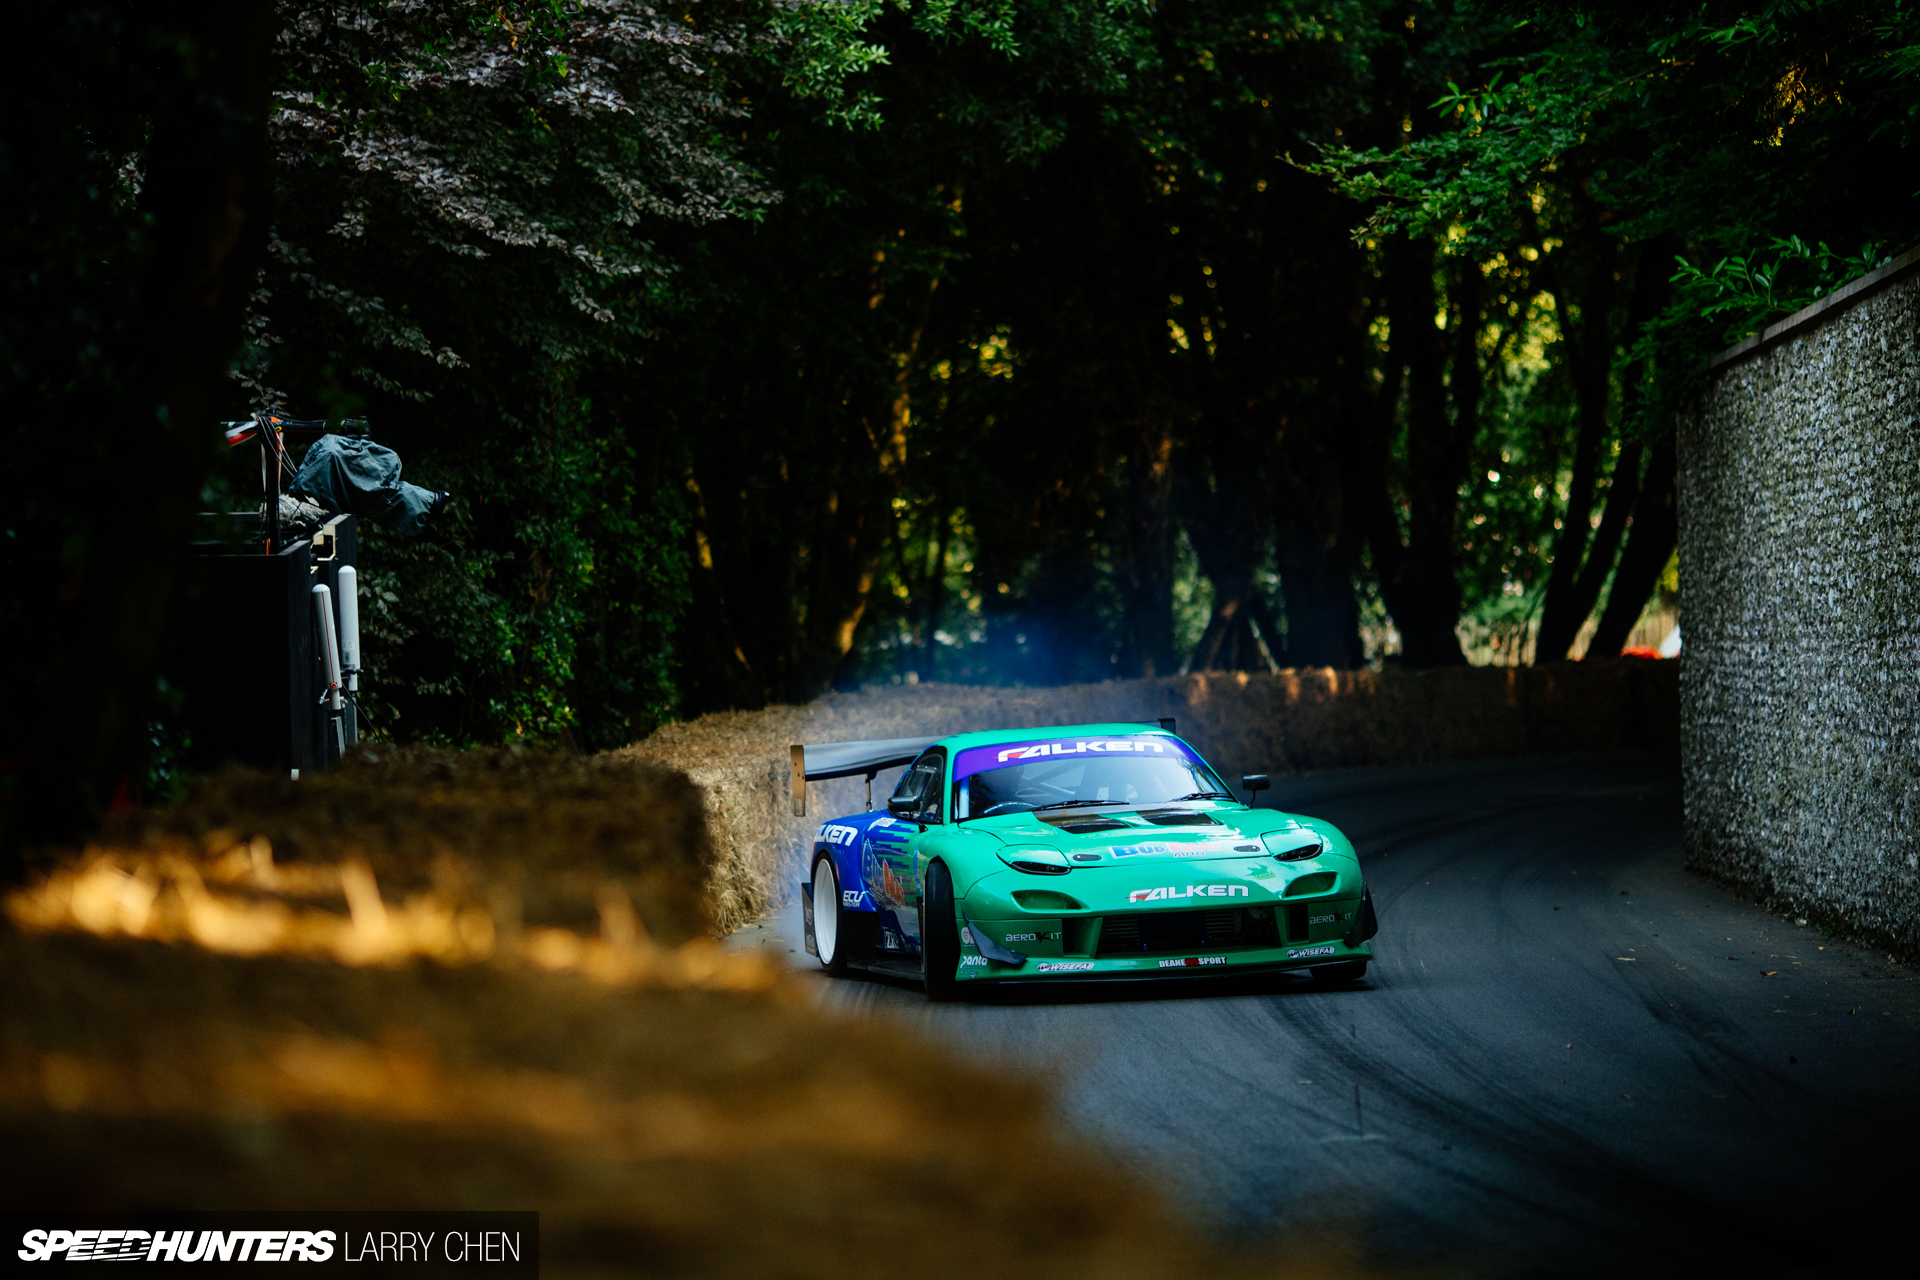 [Image: Larry_Chen_2017_Speedhunters_goodwood_fos_15.jpg]